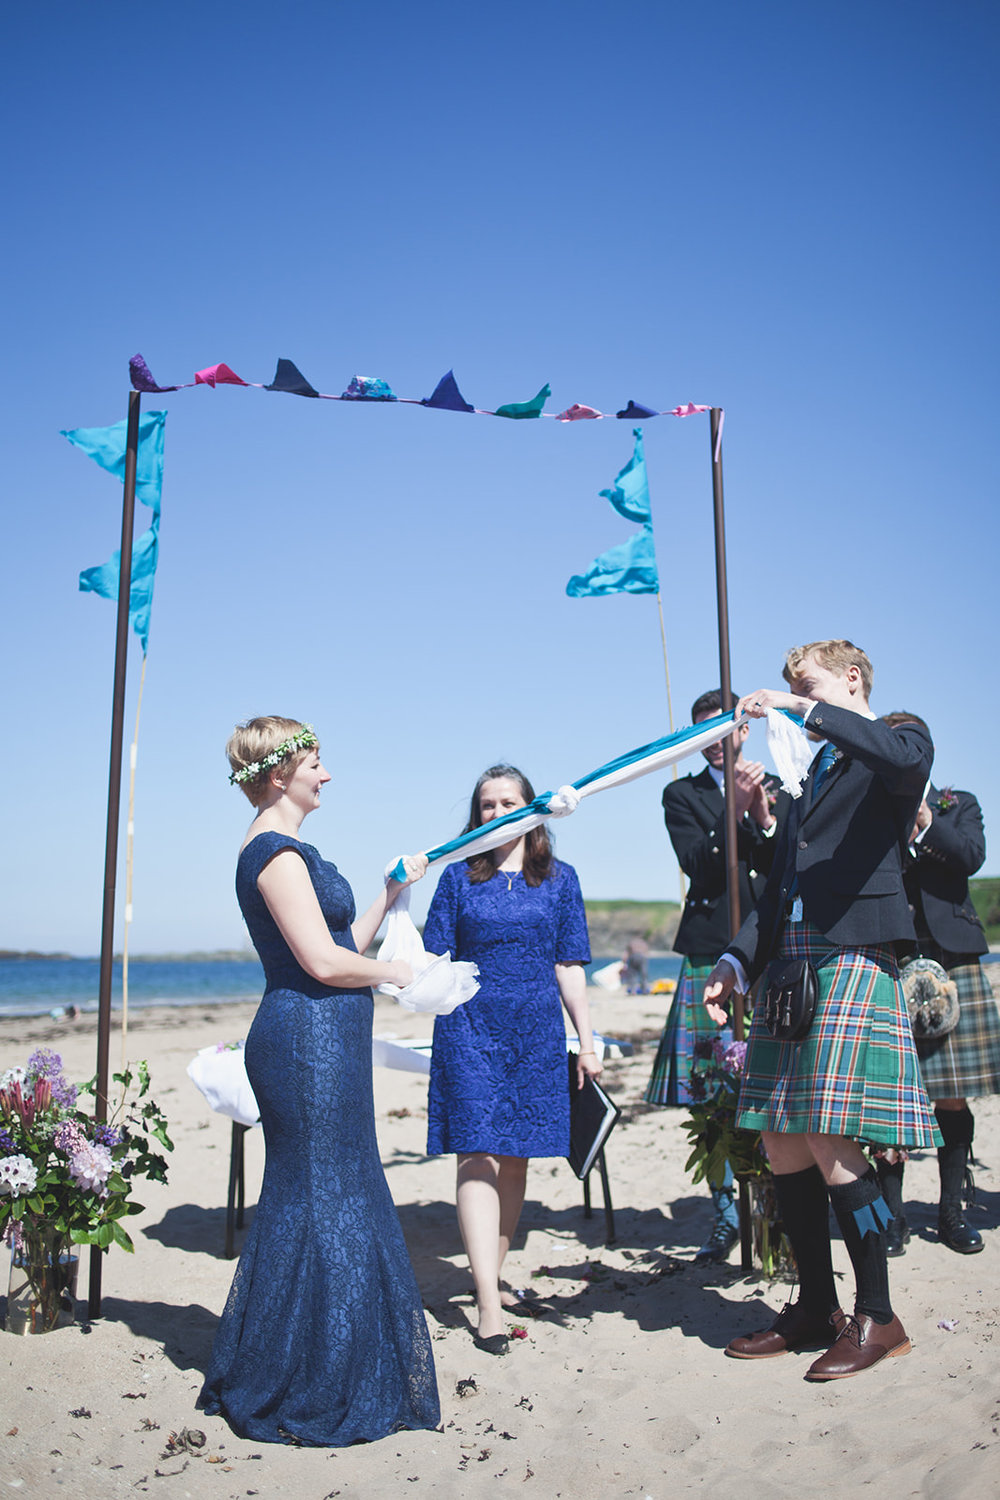 a bride and groom pull the hand fasting scarf during their ceremony. scotland outdoor humanist beach wedding. stop motion wedding films uk